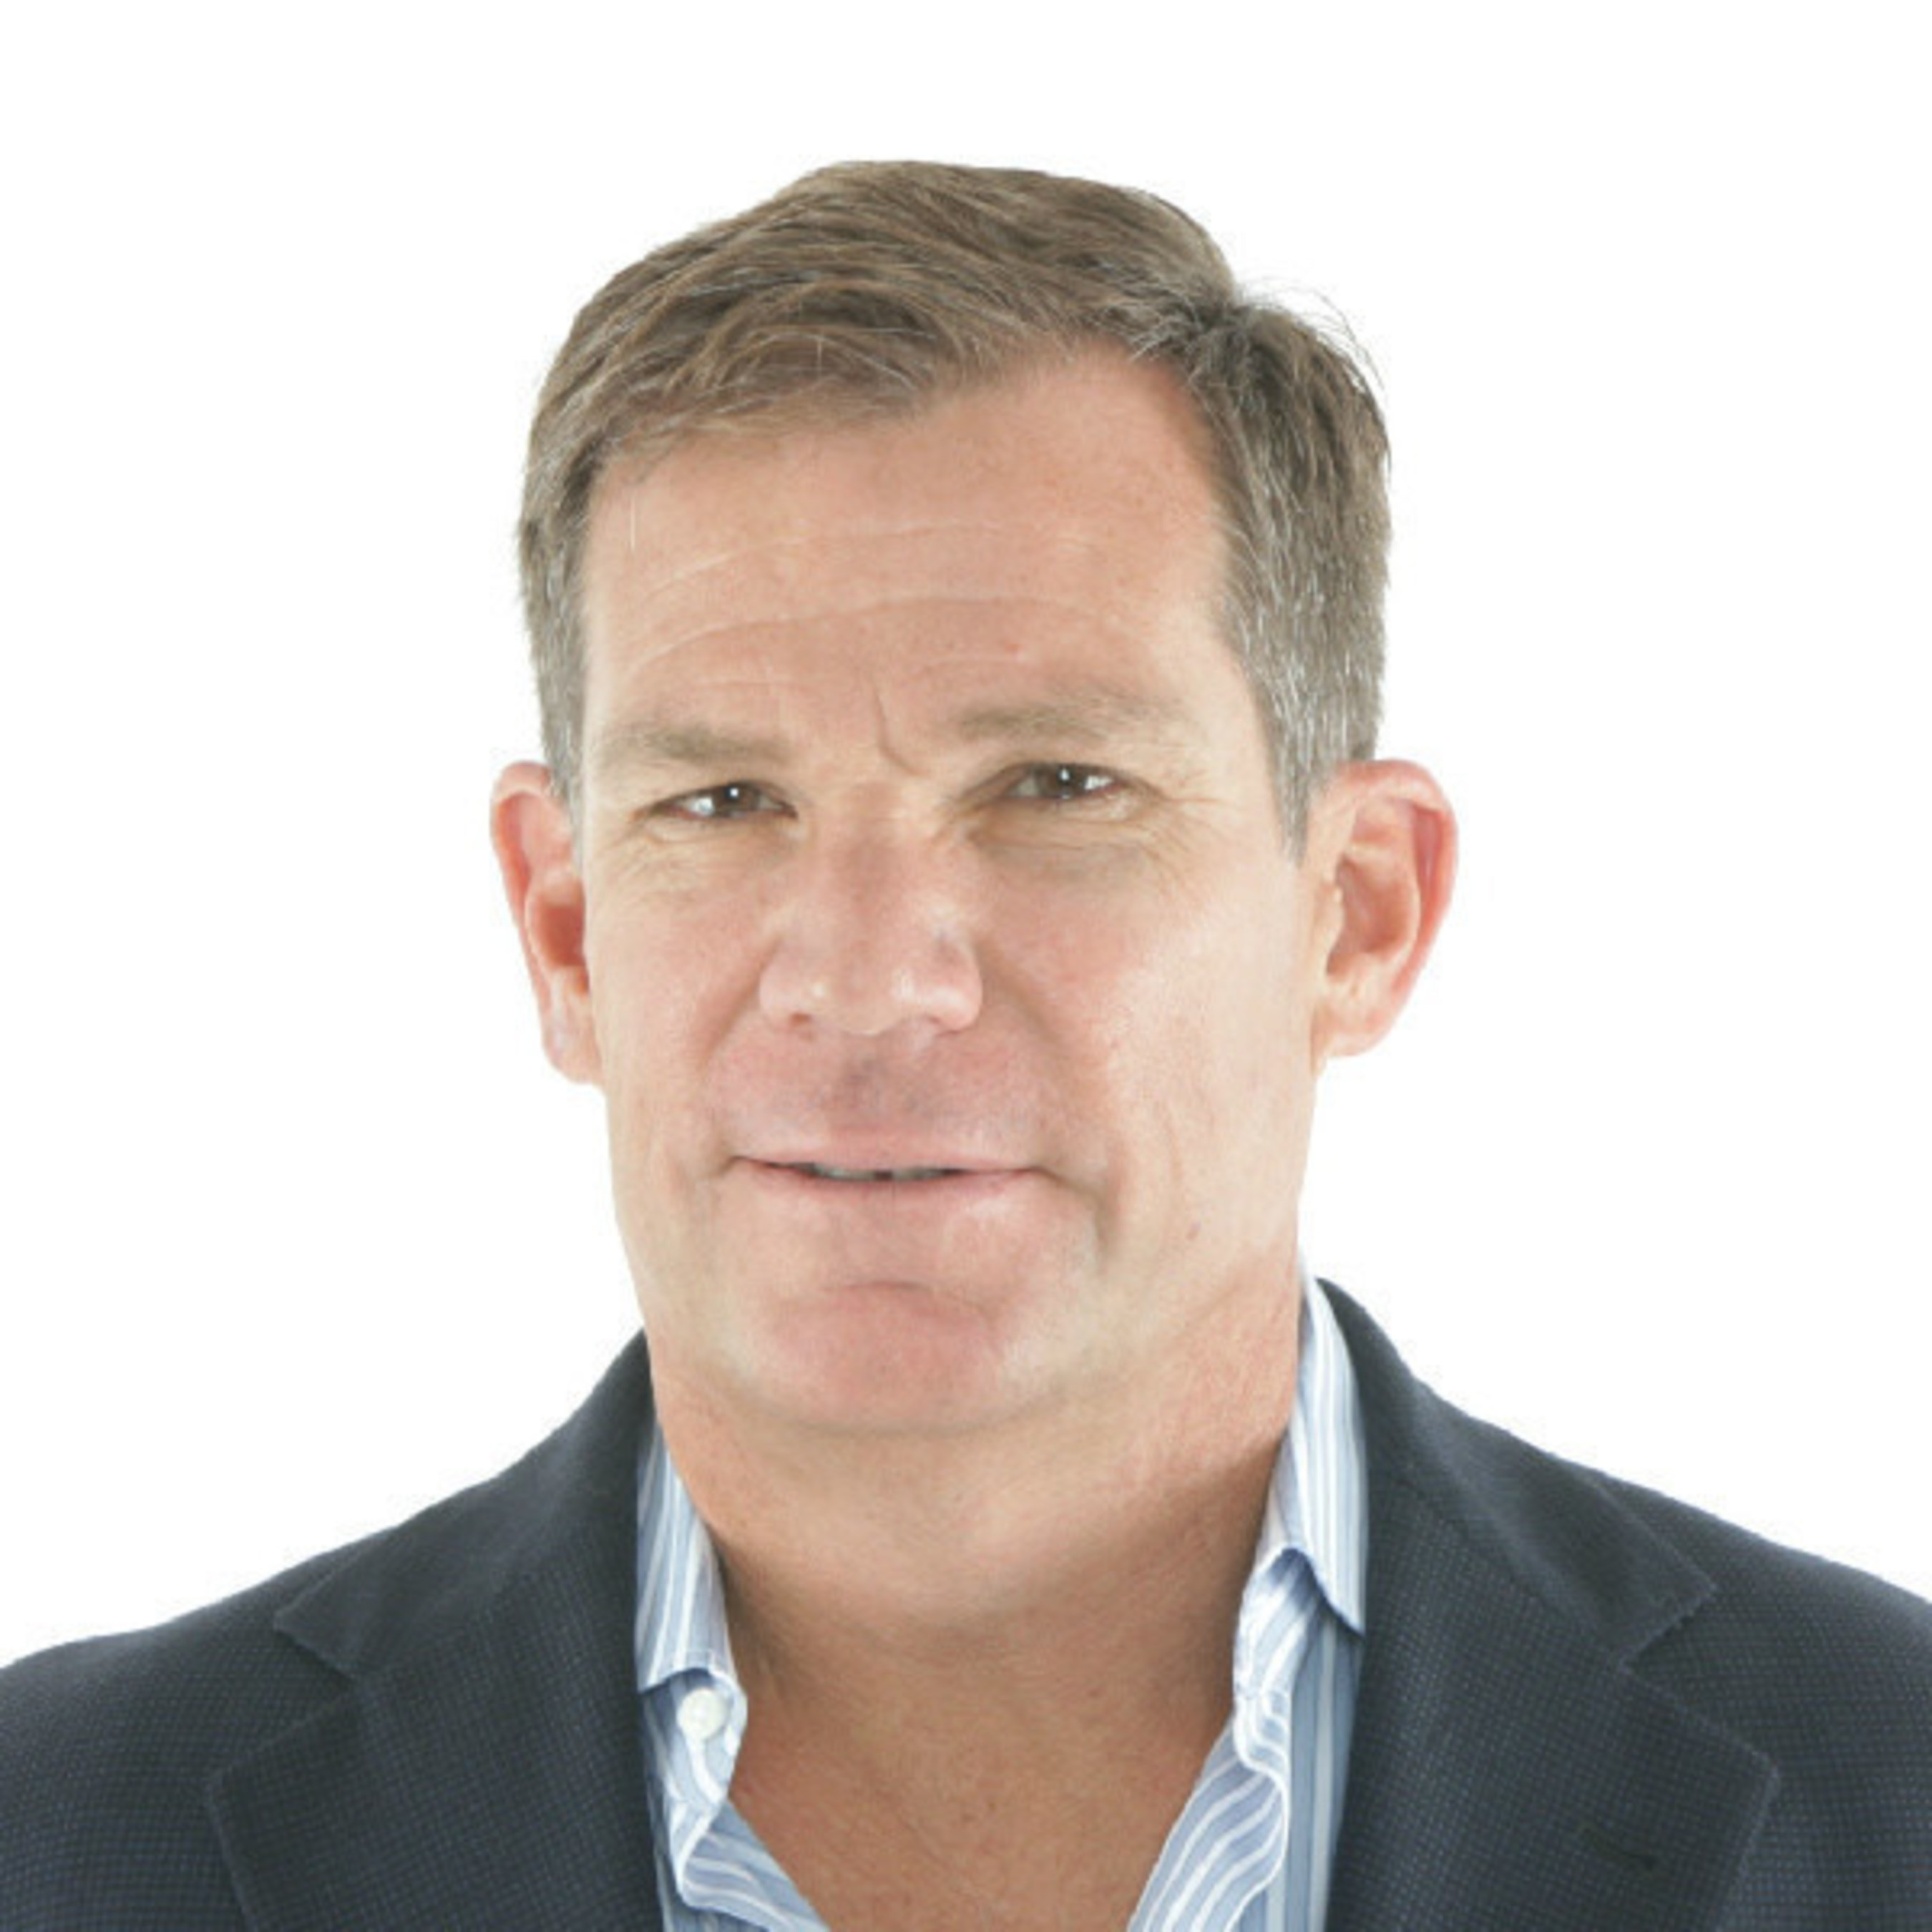 Quixey Appoints CEO John Foster